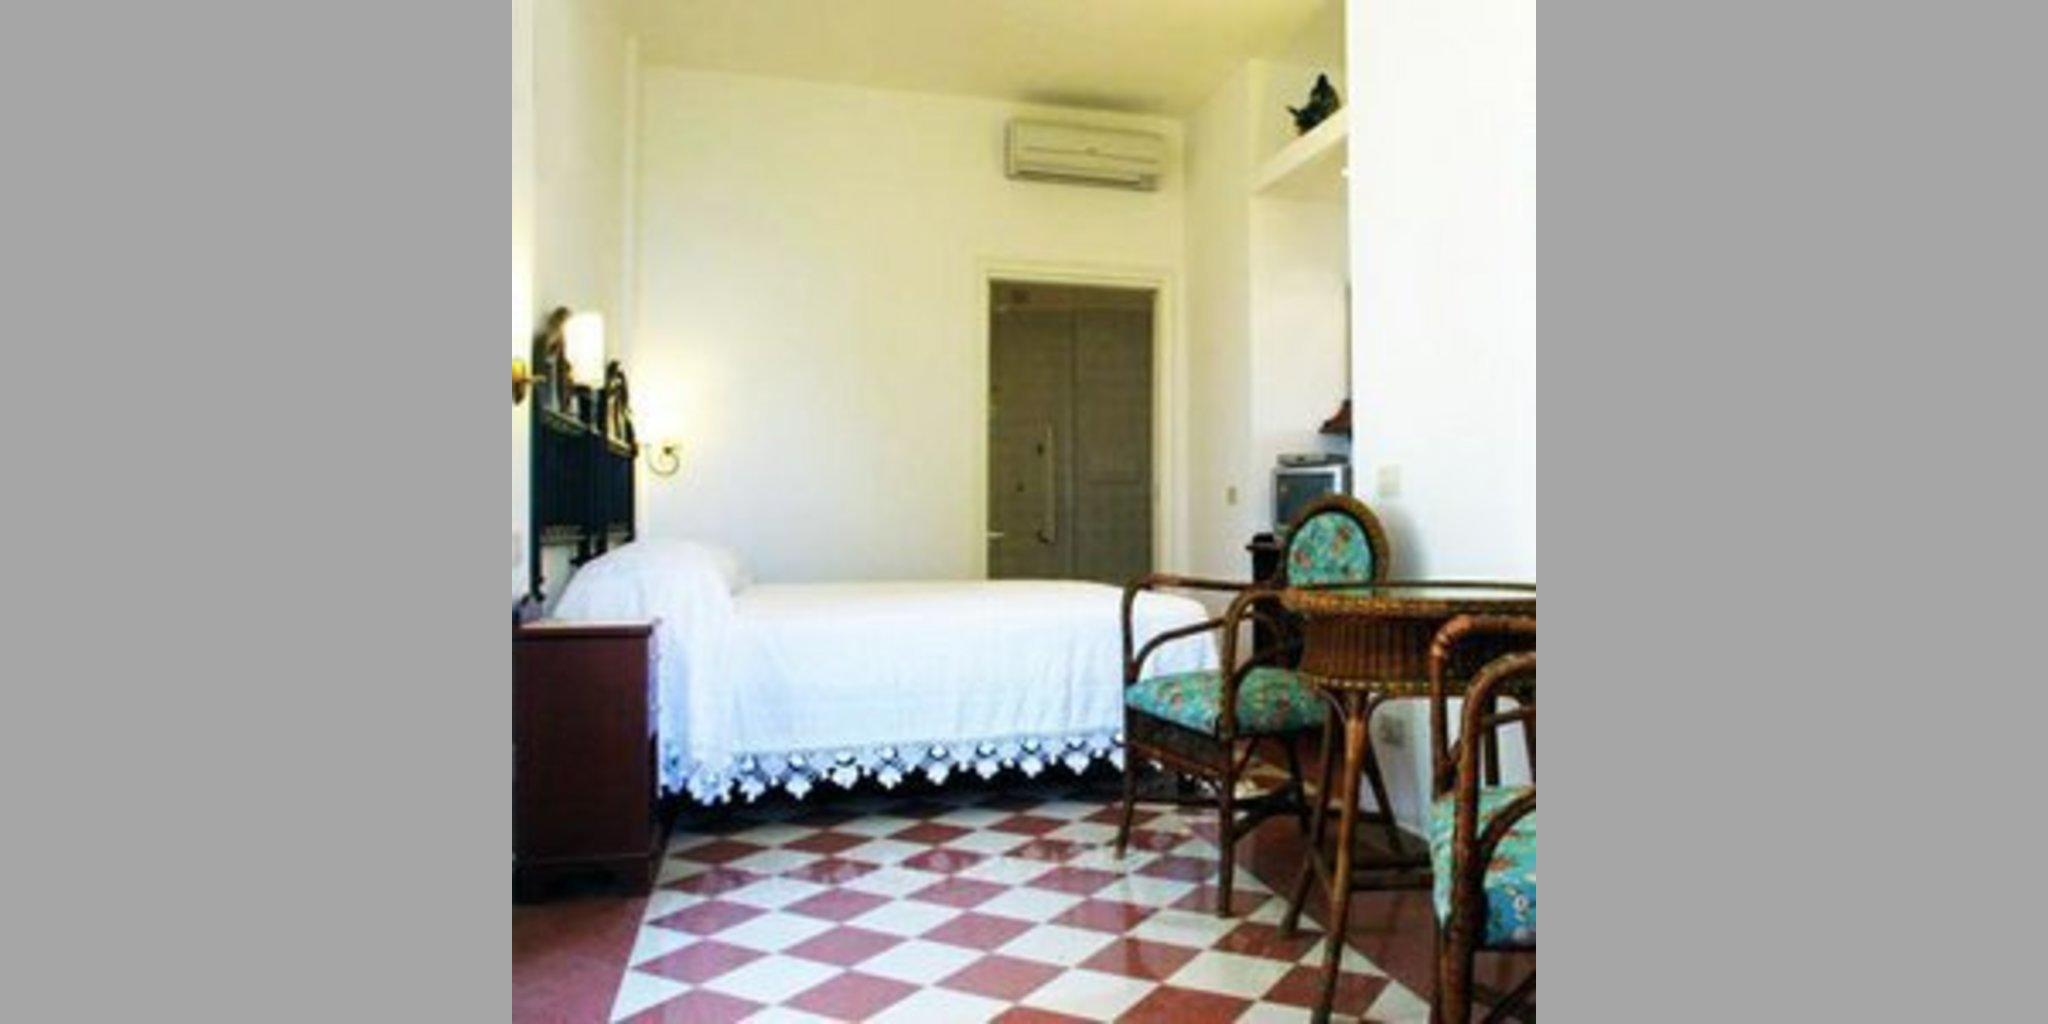 Bed & Breakfast Parghelia - Parghelia